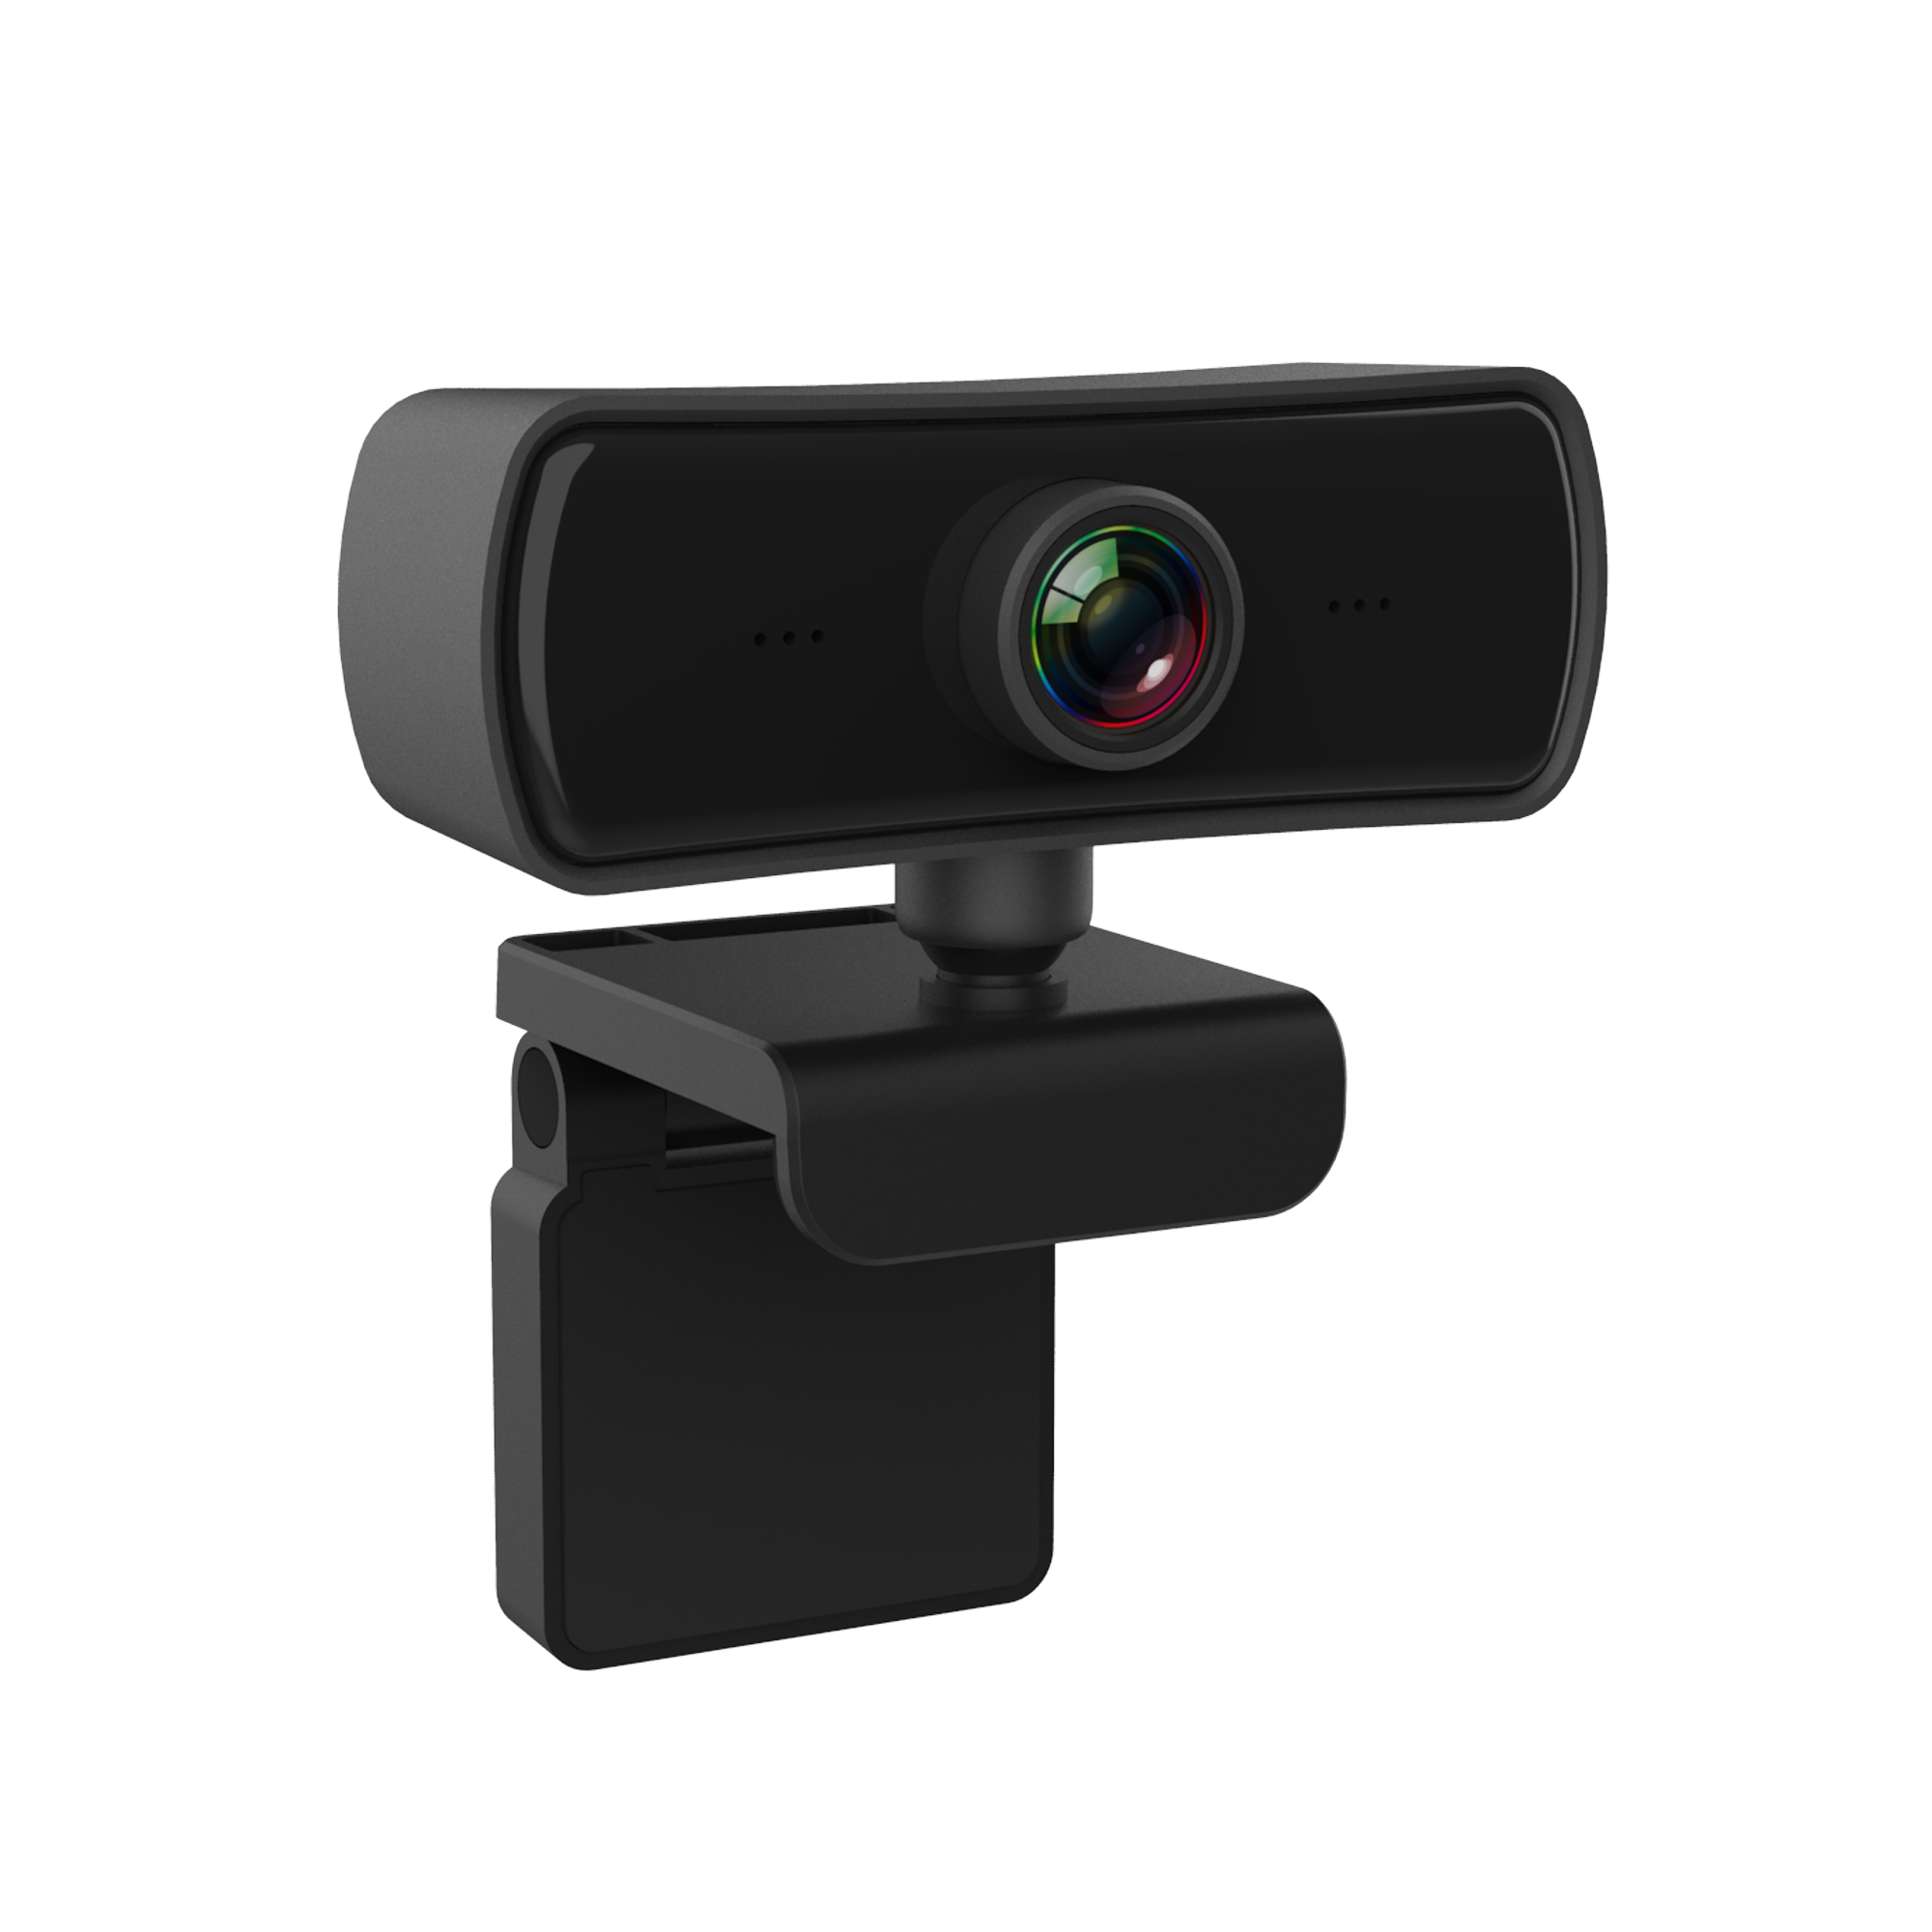 2020 new 2K HD Computer Video Webcam Usb 1080p Webcam 2k Camera for Laptop